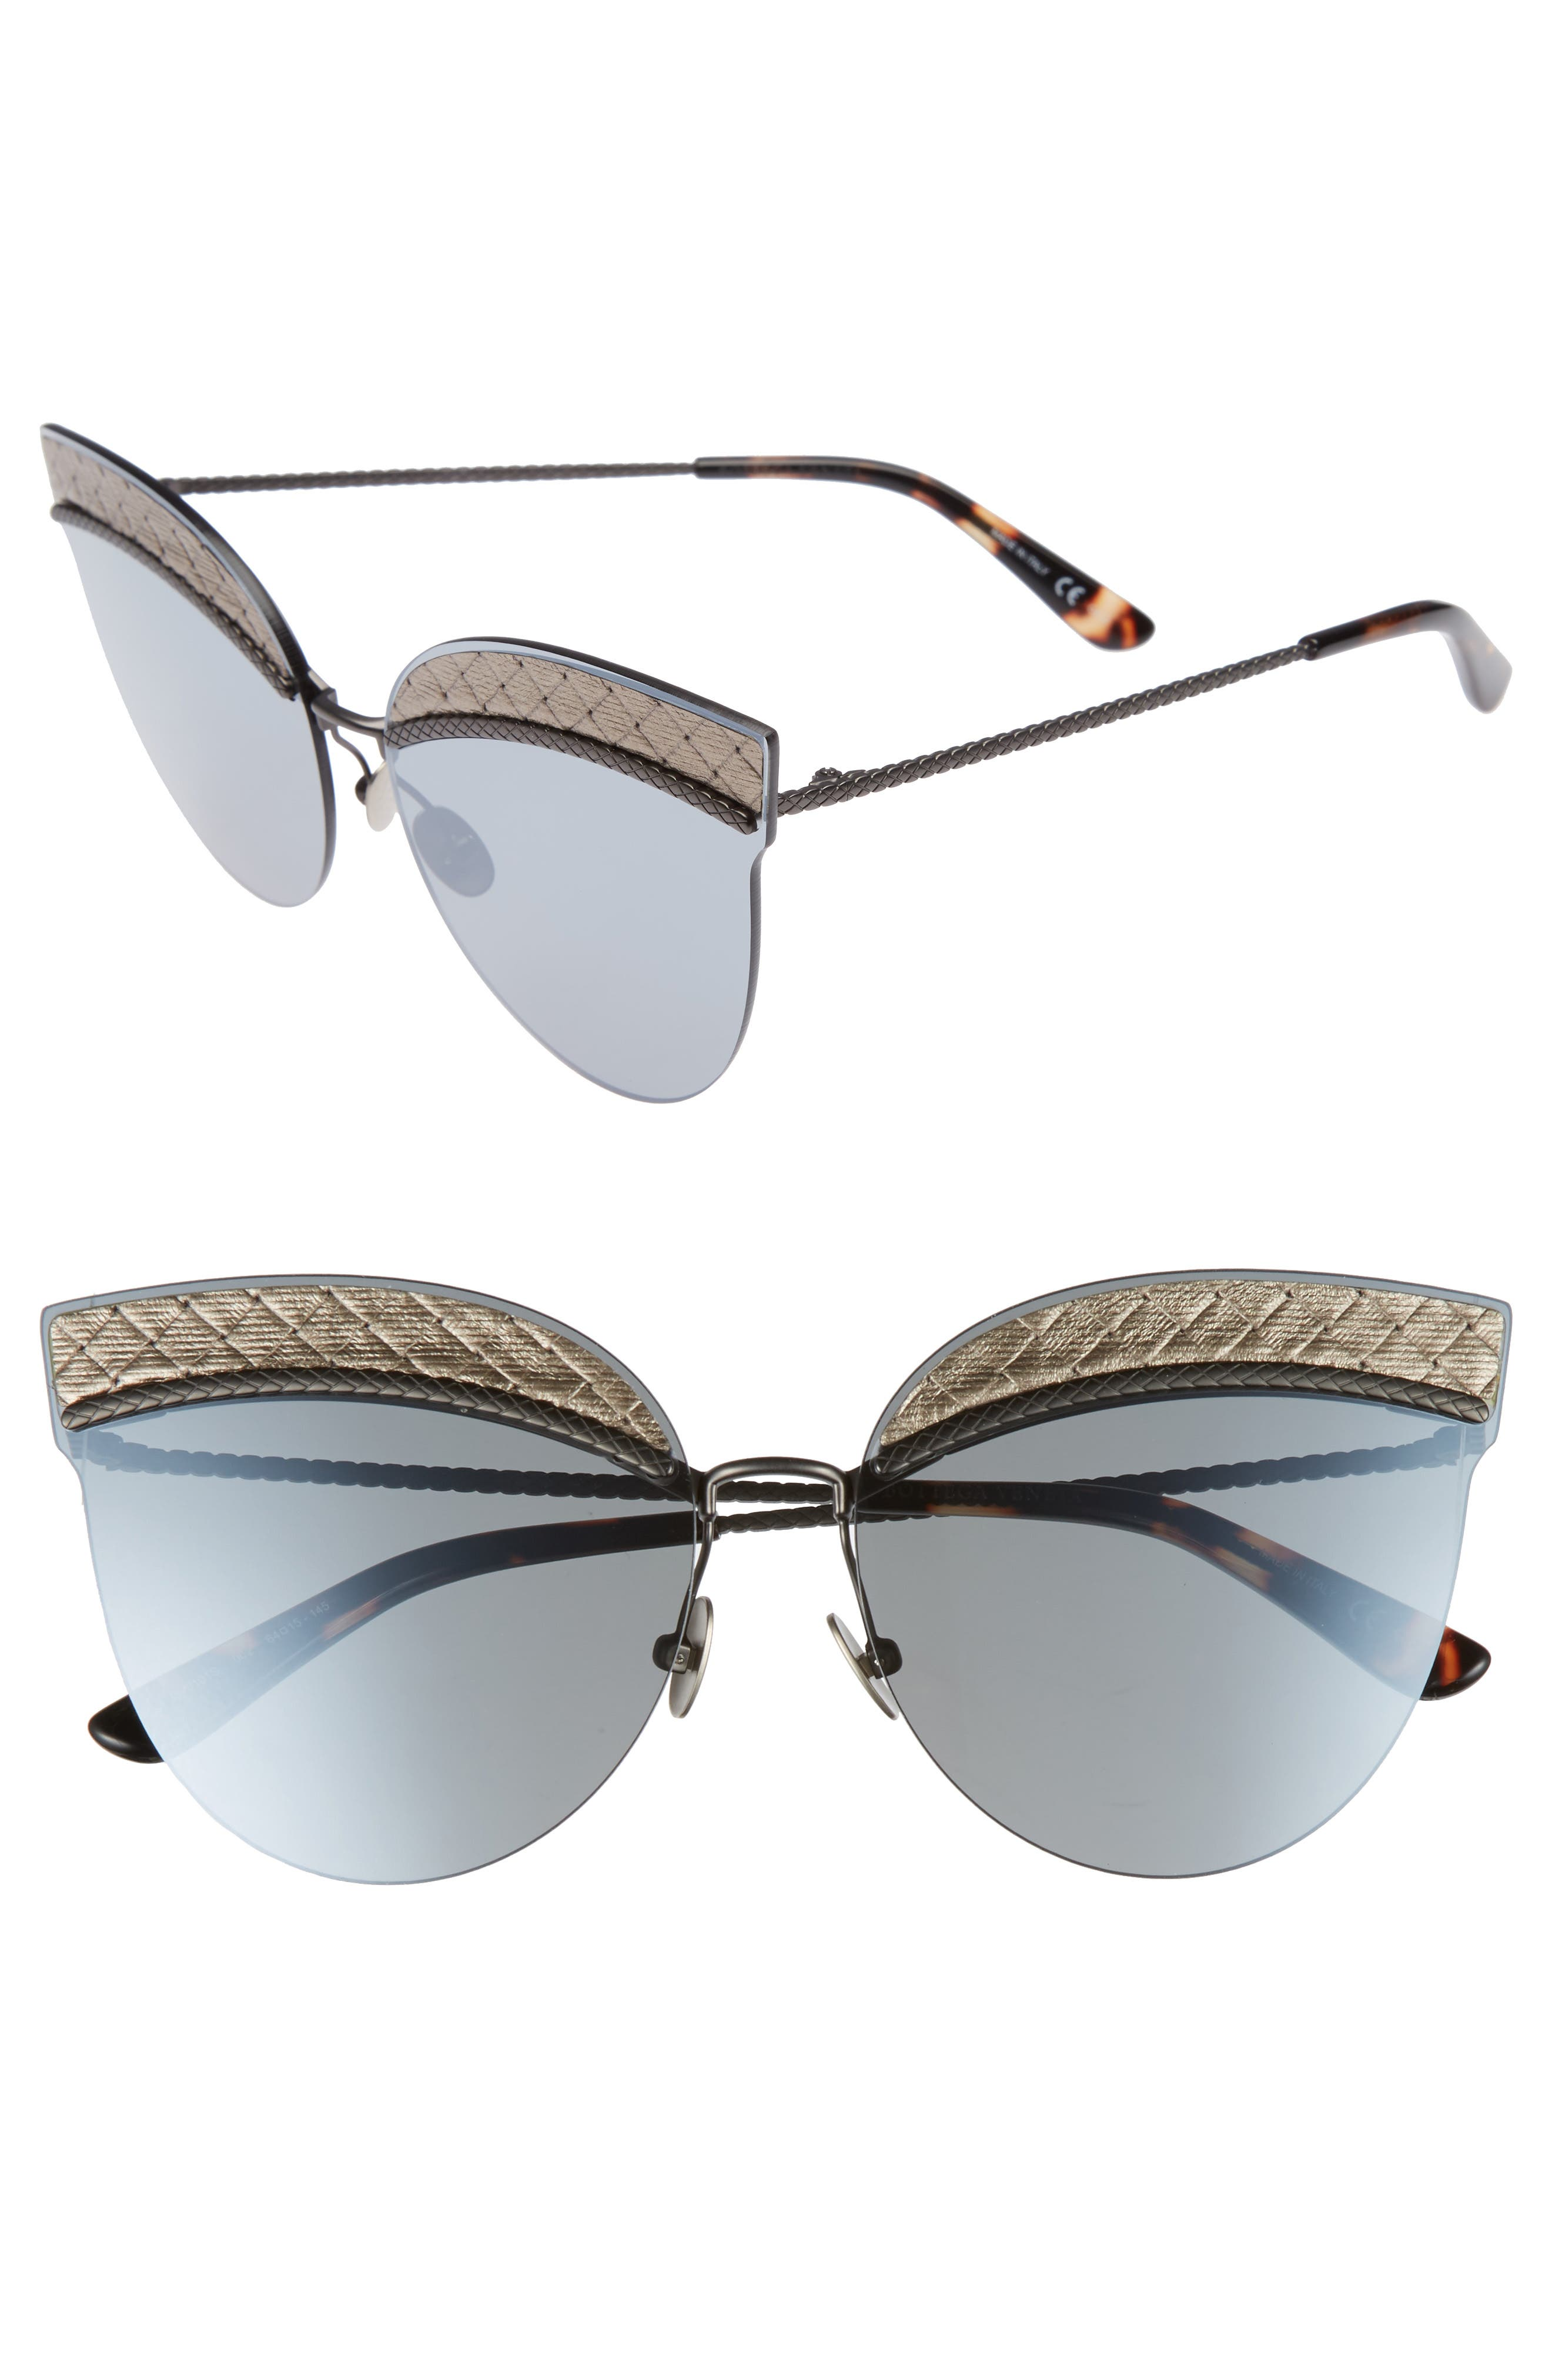 Bottega Veneta 64mm Semi-Rimless Cat Eye Sunglasses